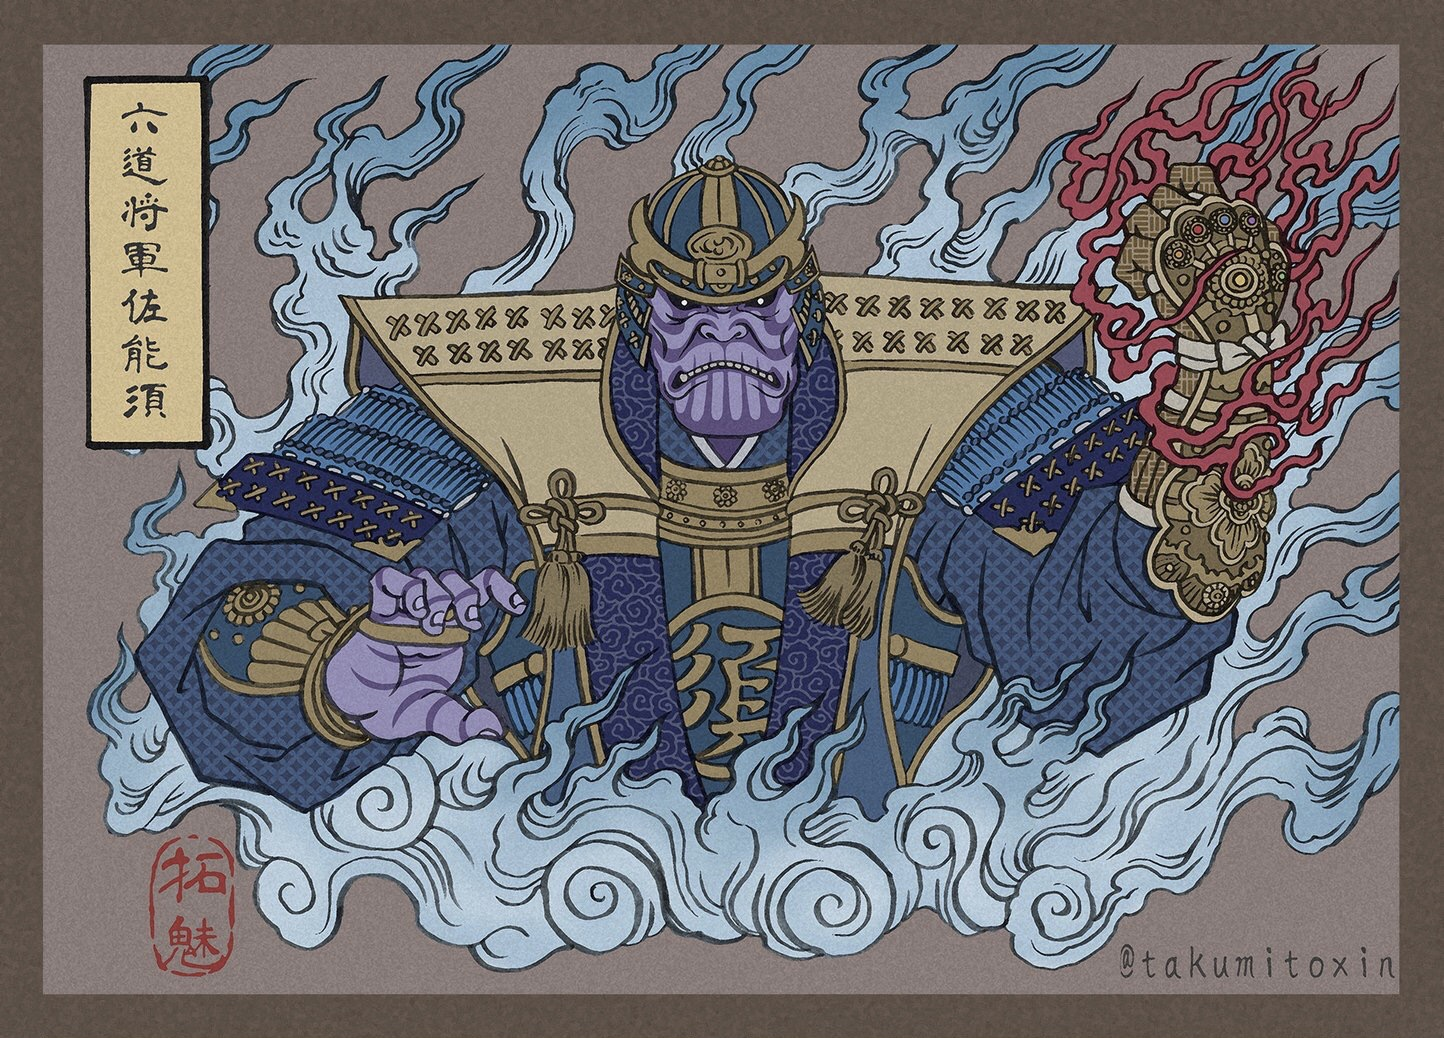 Avengers Endgame Characters Rendered in Ukiyo-e Style by